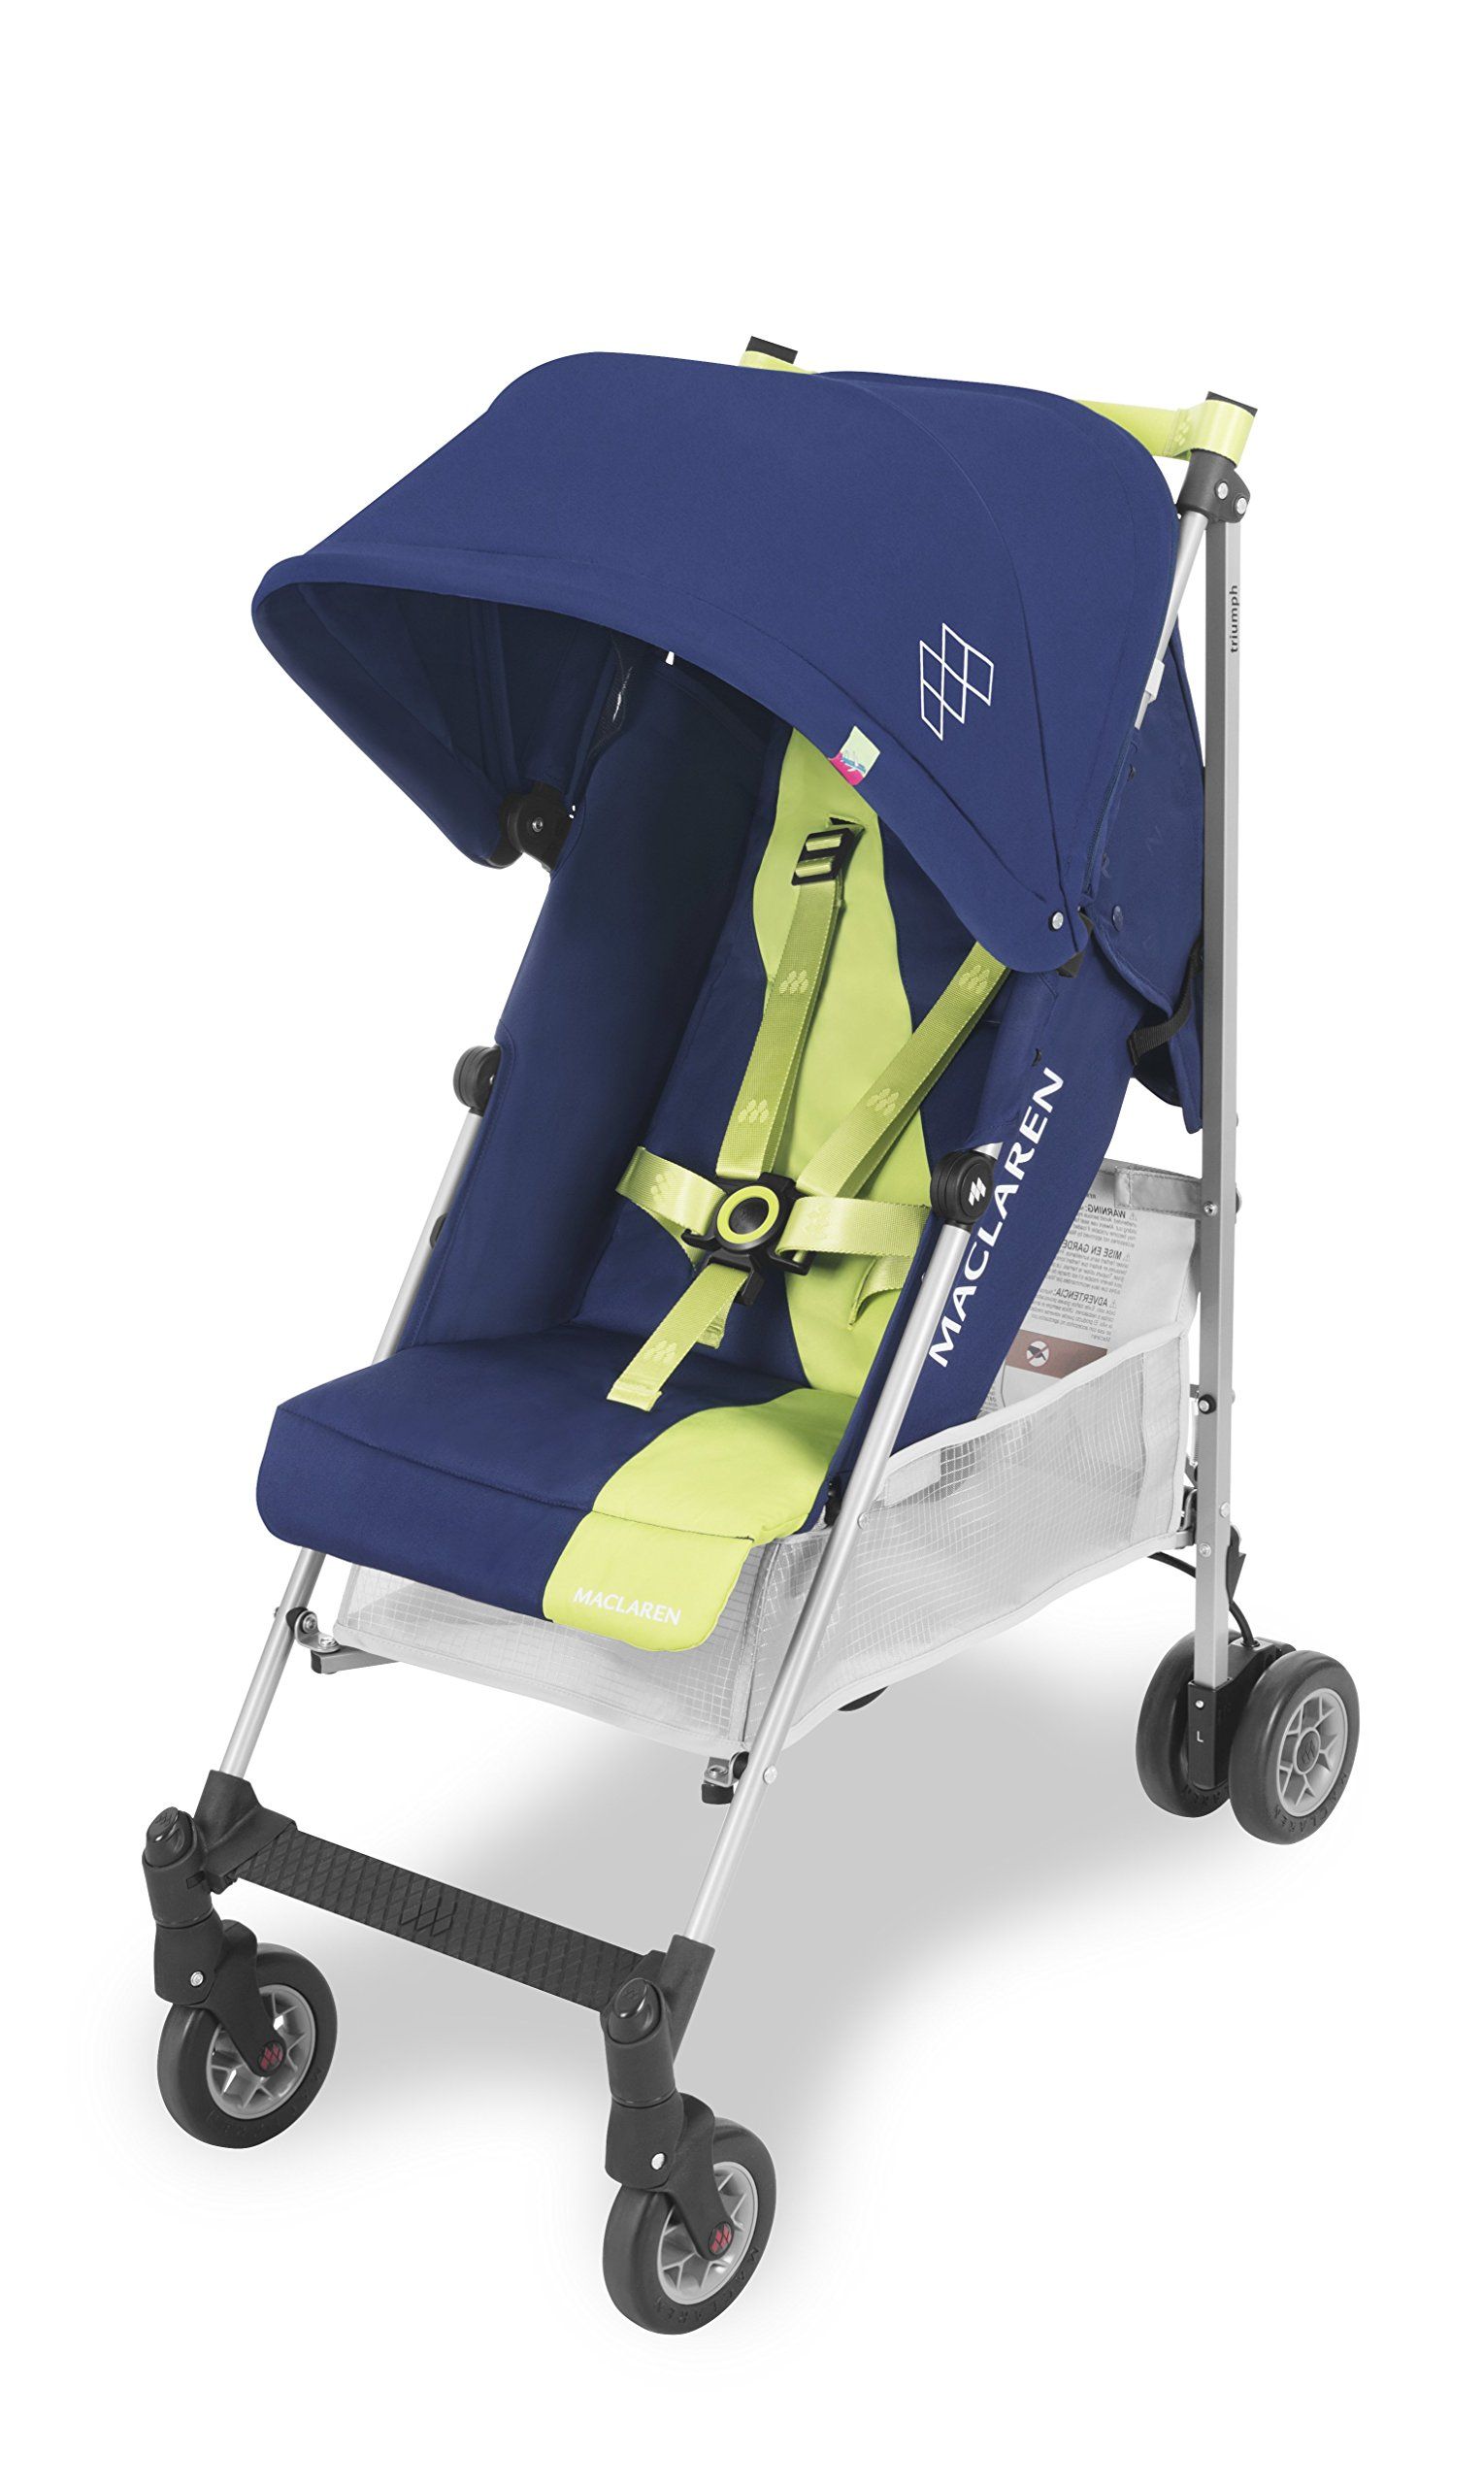 Maclaren Triumph Stroller - lightweight, compact Maclaren Basic weight of 5kg/ 11lb; ideal for children 6 months and up to 25kg/55lb Maclaren is the only brand to offer a sovereign lifetime warranty Extendable upf 50+ sun canopy and built-in sun visor 2